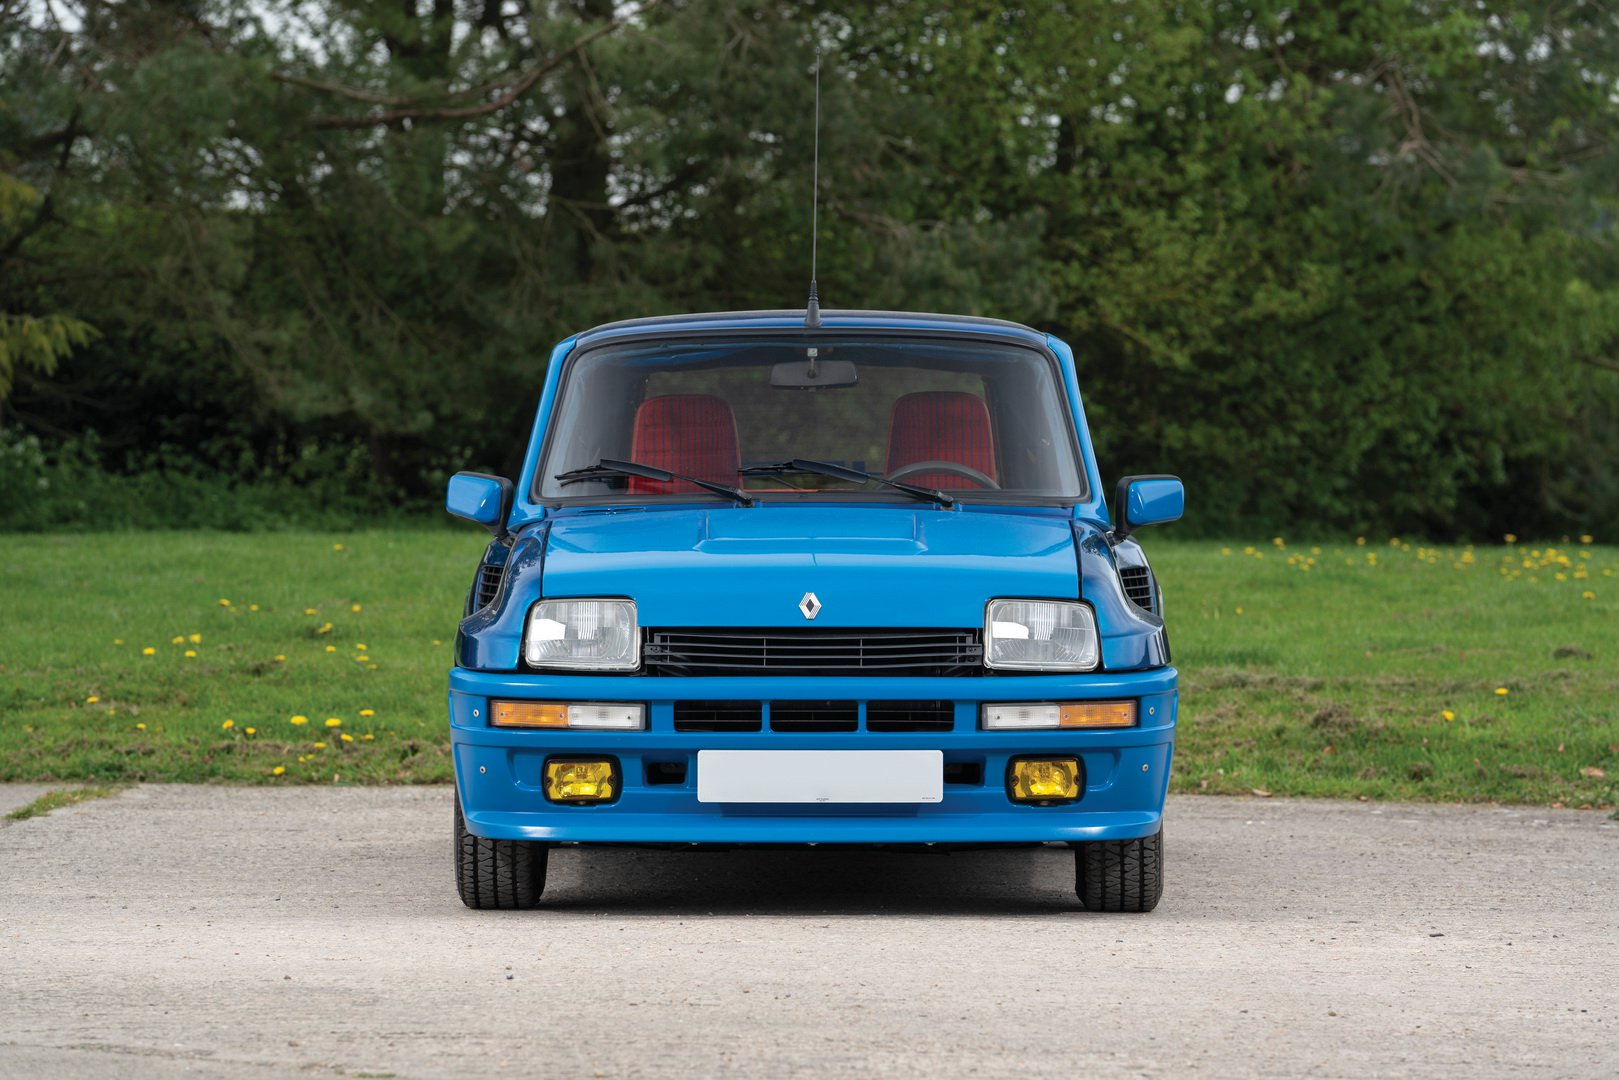 Renault-5-Turbo-for-sale-4